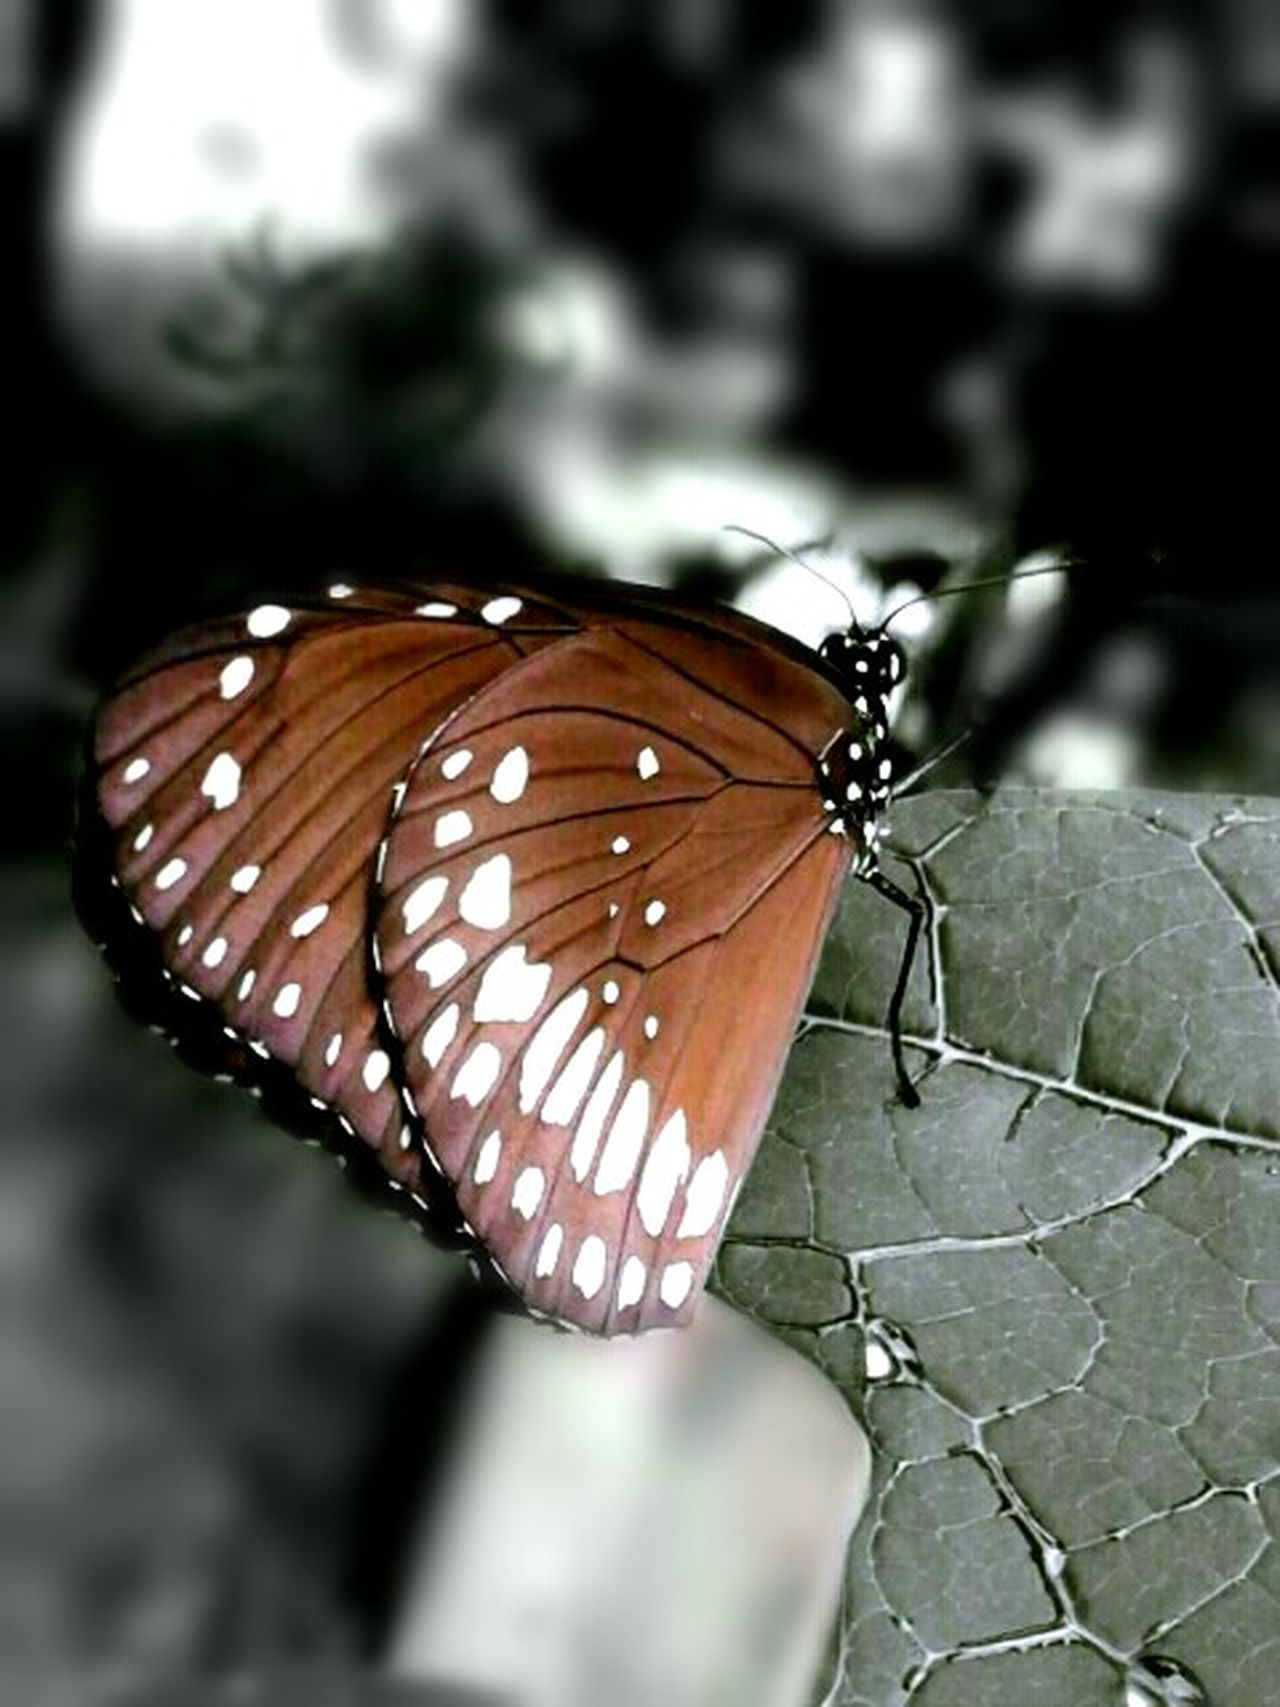 The Flying Chocolate.. 😊😜 (common name: Indian Common Crow) Butterfly Showcase June EyeEm Best Edits EyeEm Best Shots EyeEm Nature Lover EyeEm Gallery Butterfly Collection Butterfly Wings Butterflyporn Butterfly On Leaf Papaya Leaf Indian Common Crow Colorsplash Brown Butterfly Brown Color Chocolate Brown Butterfly Closeup Butterfly - Insect Garden Photography Mobile Photography Edited My Way Popular Fine Art Photography The Innovator Colour Of Life